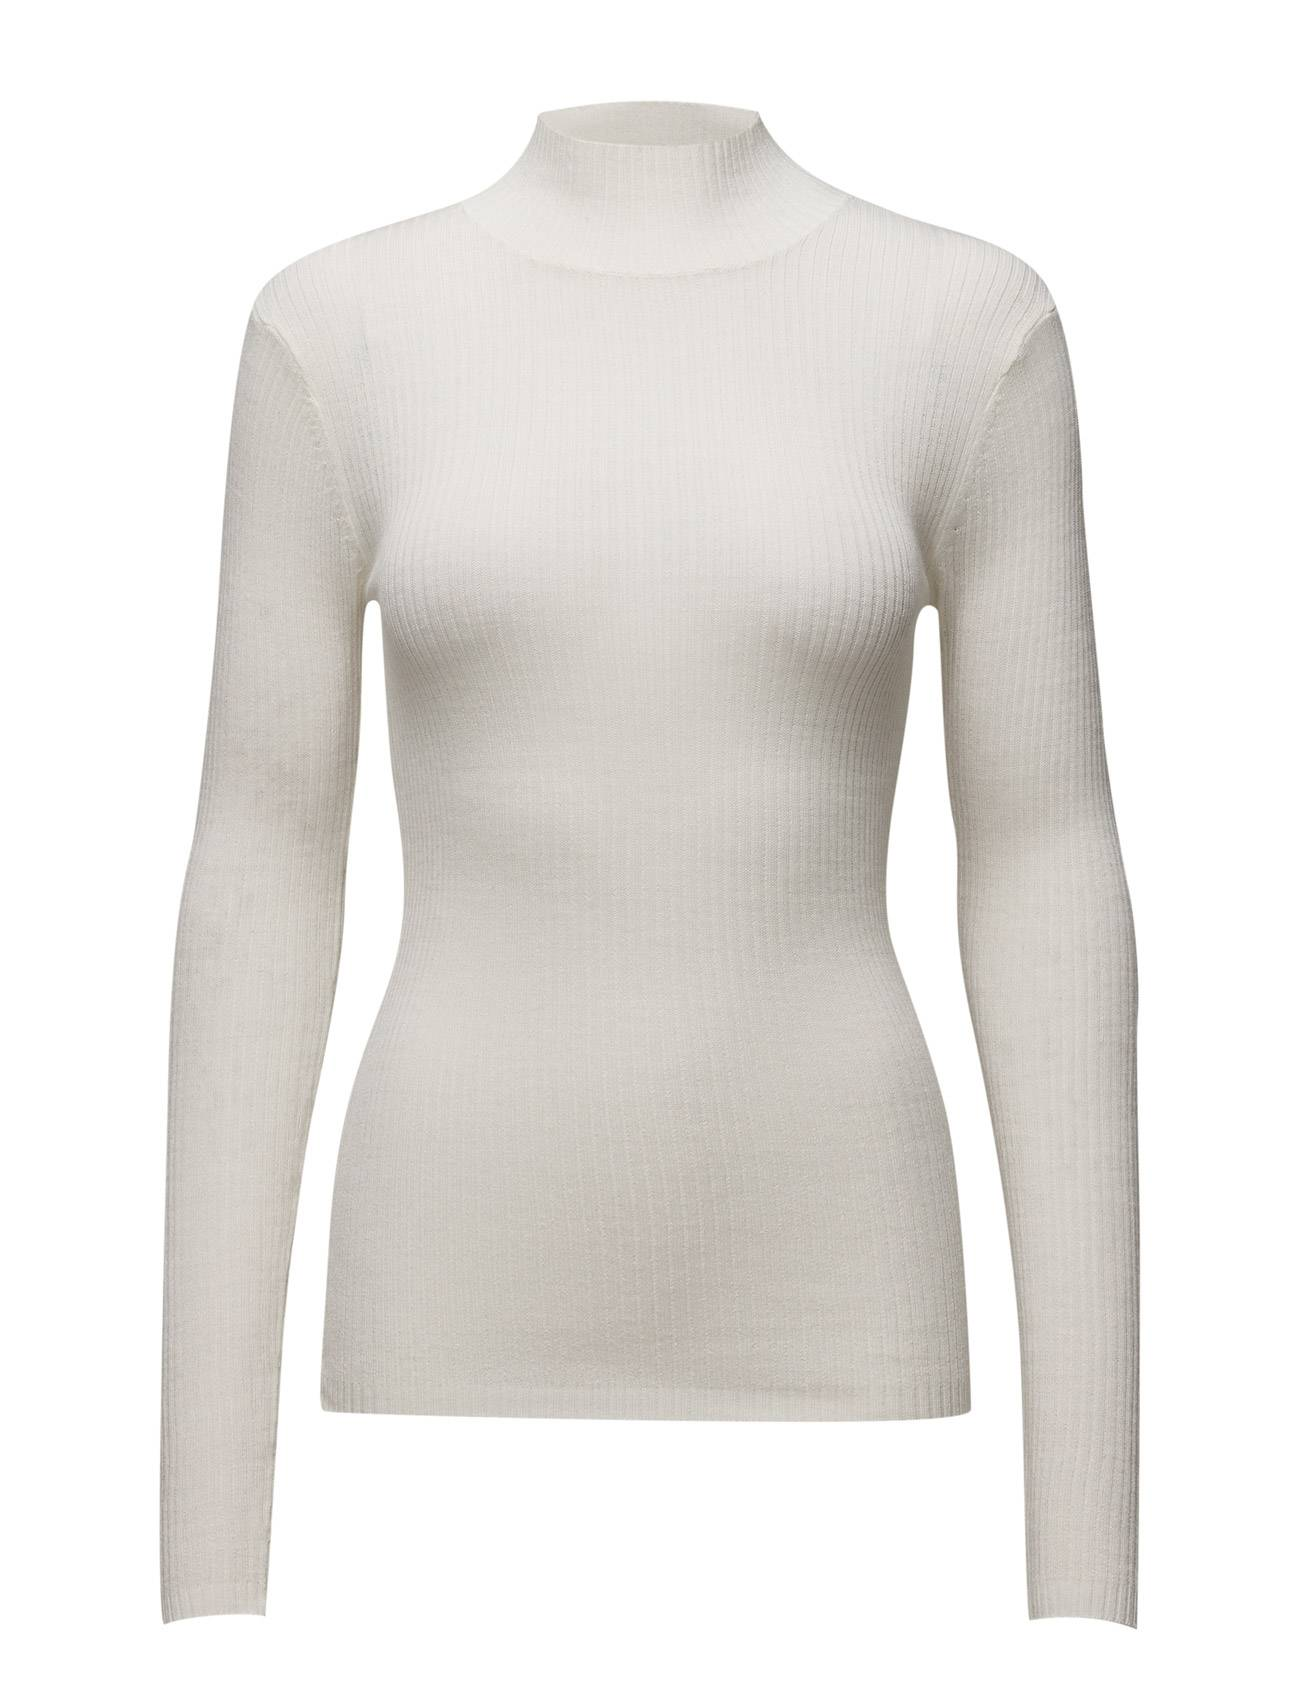 Selected Femme Sfcosta Ls Knit Rib Turtleneck